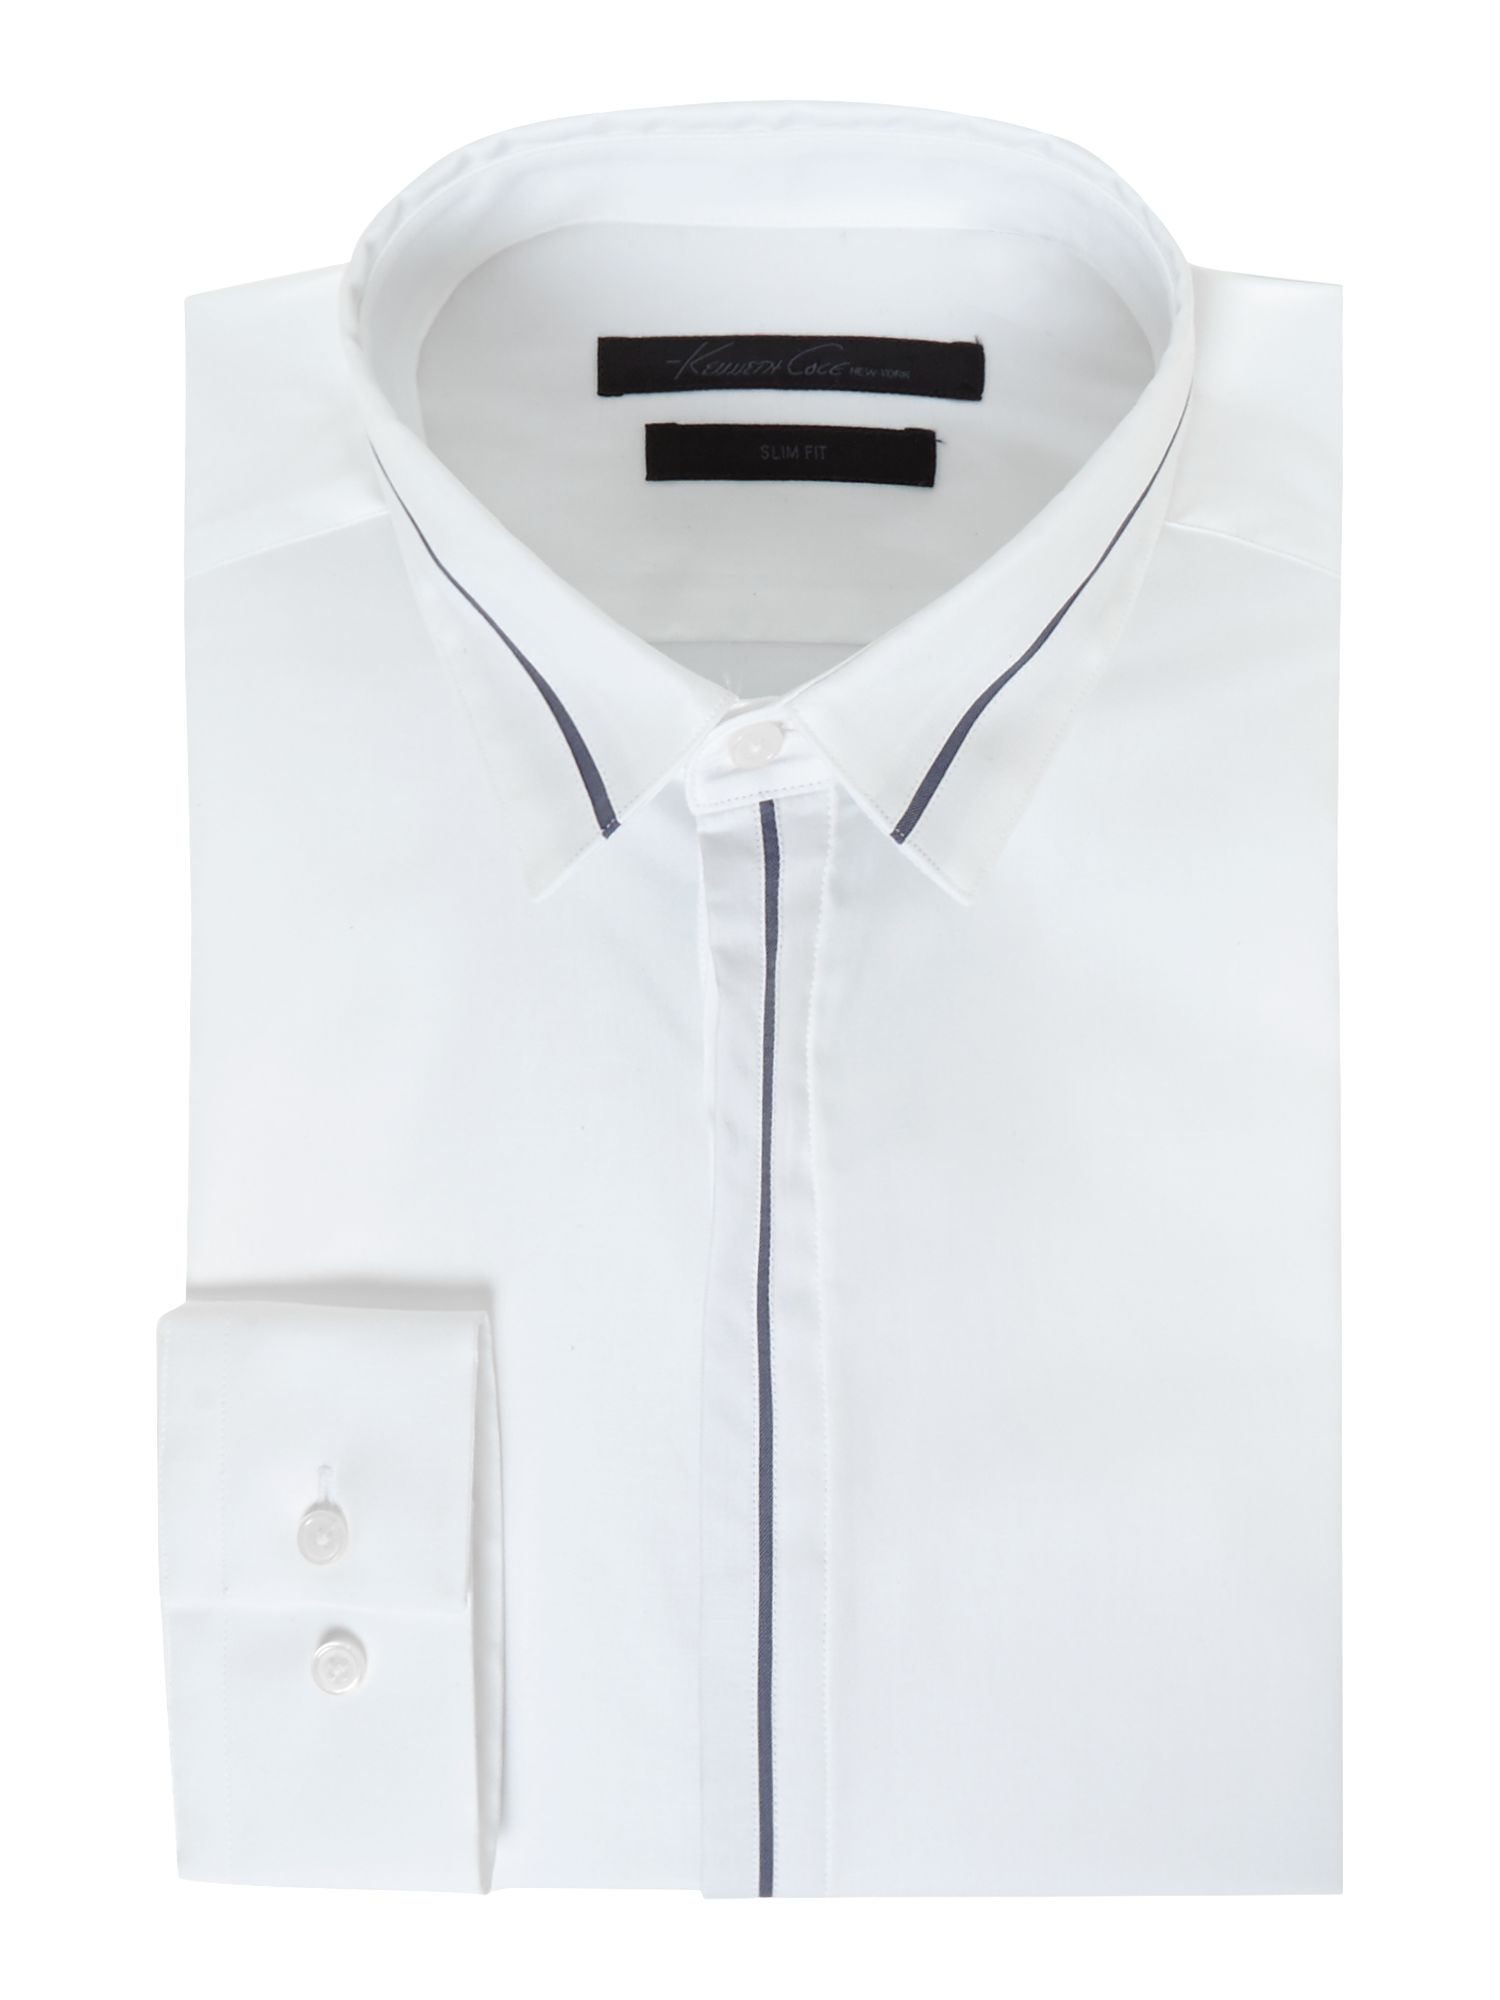 Clifford contrast collar and cuff detail shirt